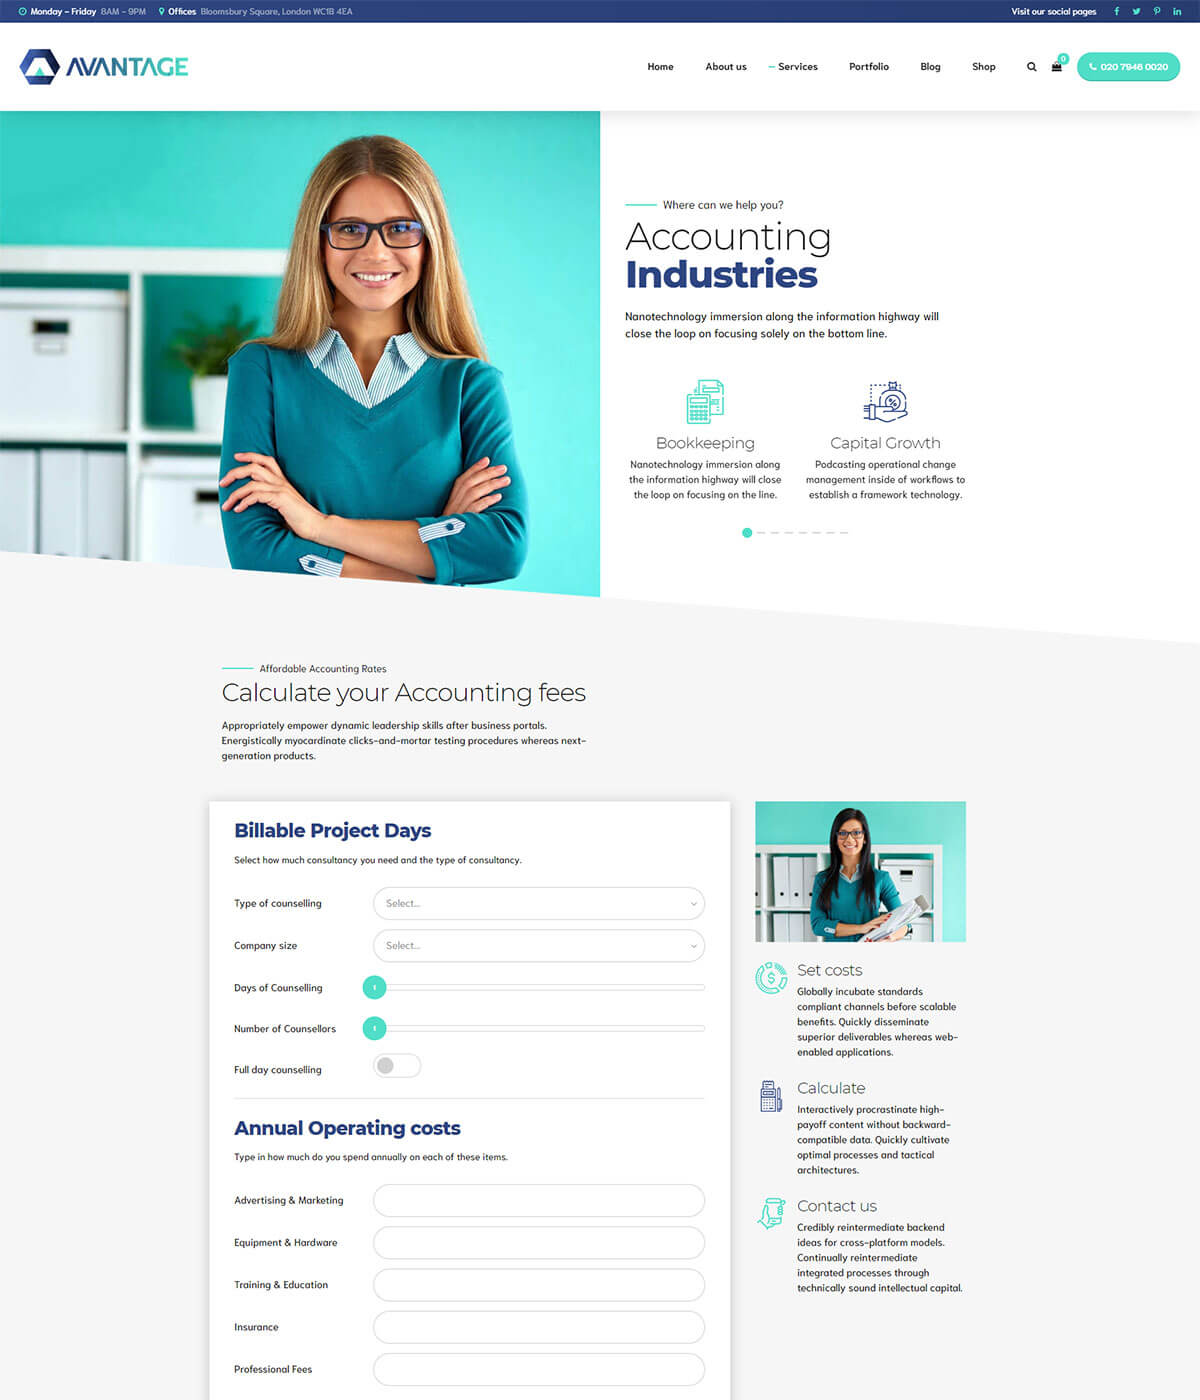 https://avantage.bold-themes.com/wp-content/uploads/2019/05/accountant-10-cc.jpg